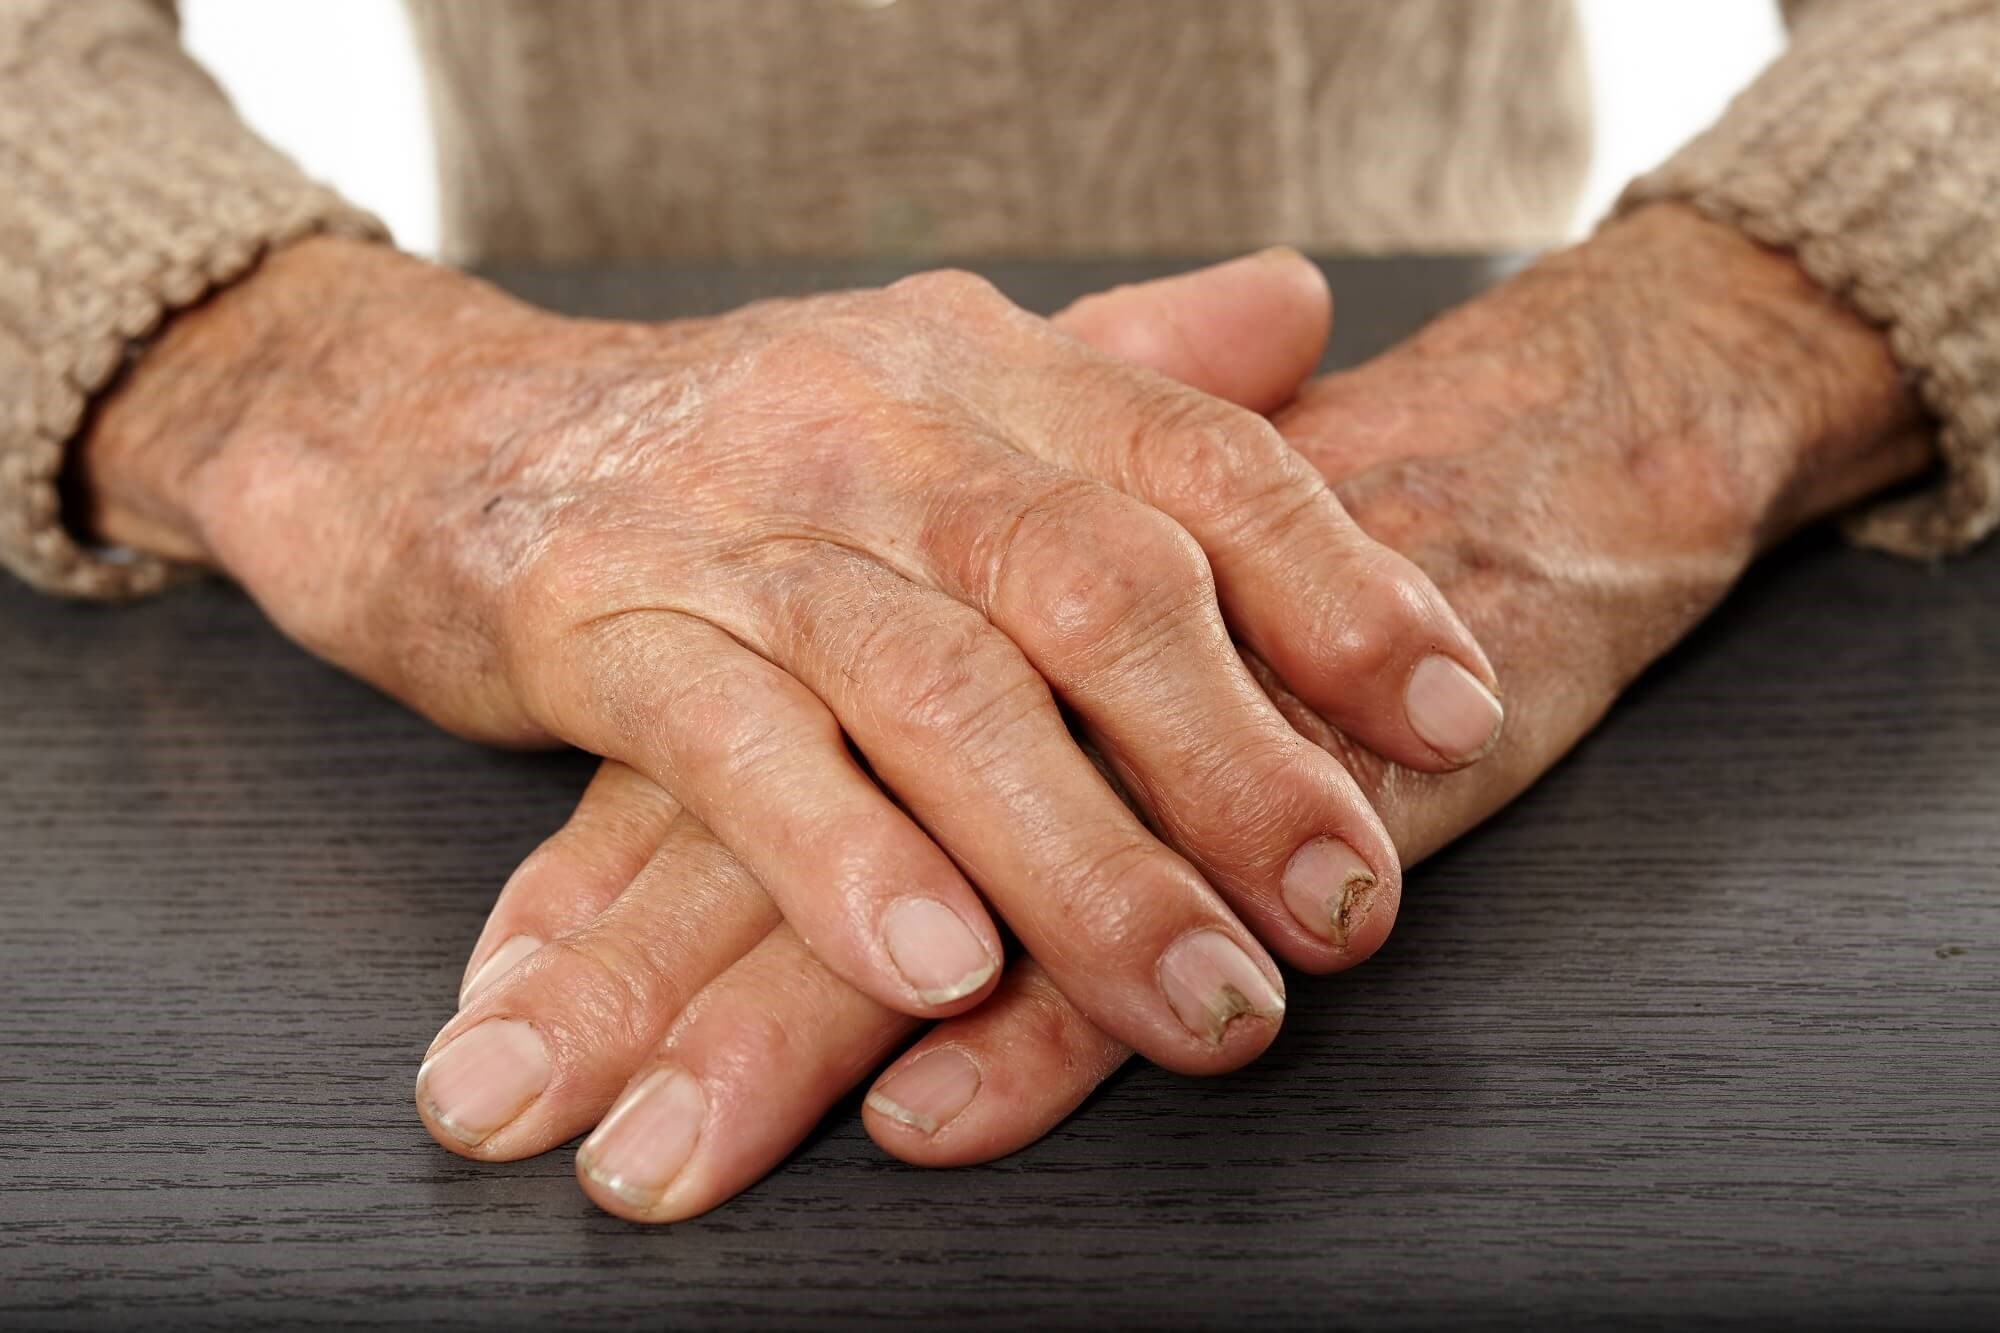 Standard Set of Outcomes Developed for Value-Based Health Care in Inflammatory Arthritis